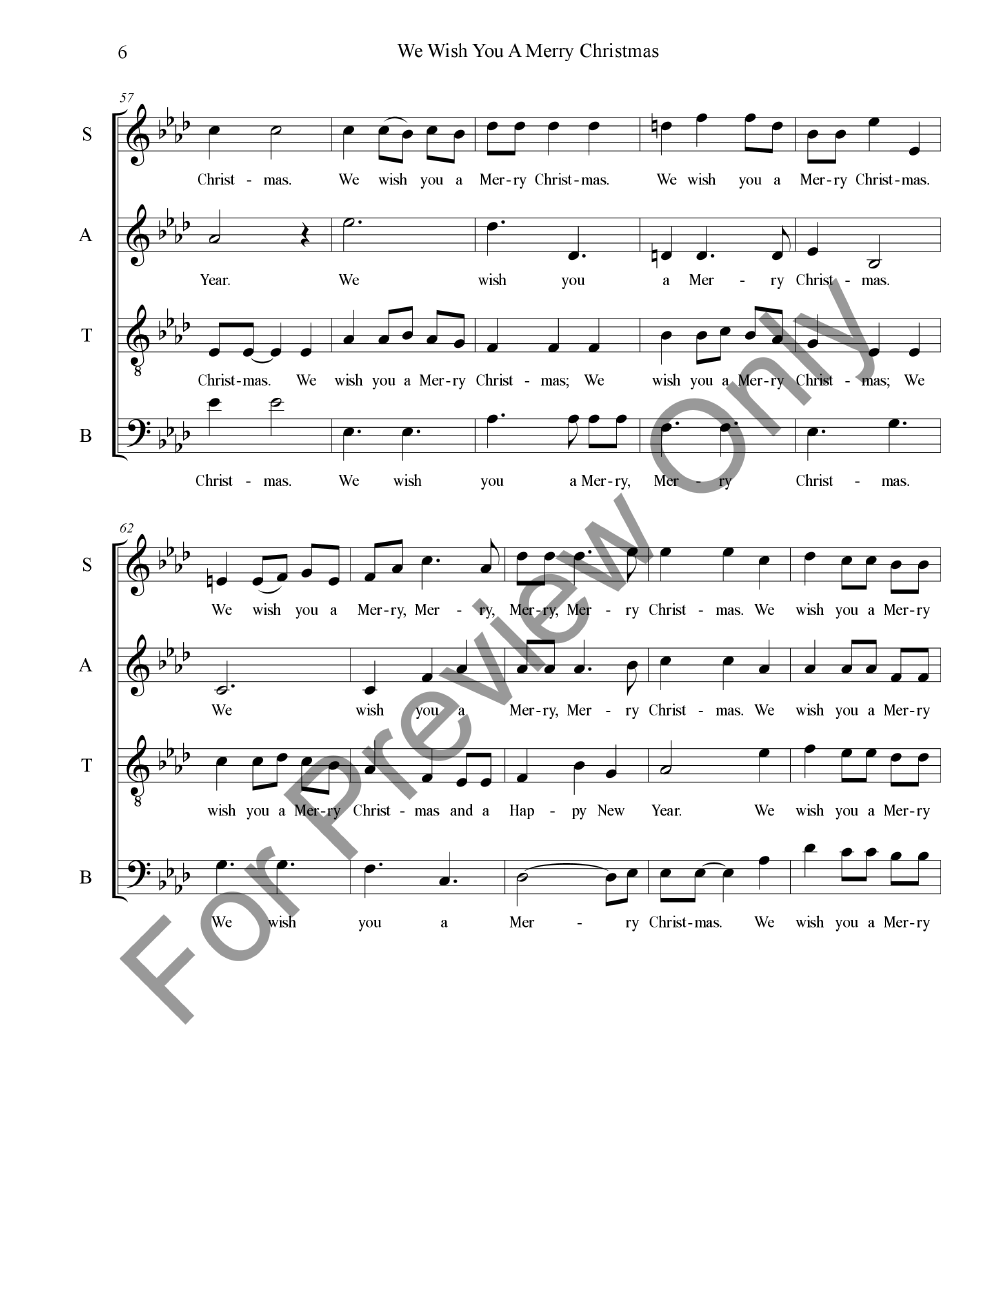 We Wish You A Merry Christmas (SATB ) by Tra | J.W. Pepper Sheet Music